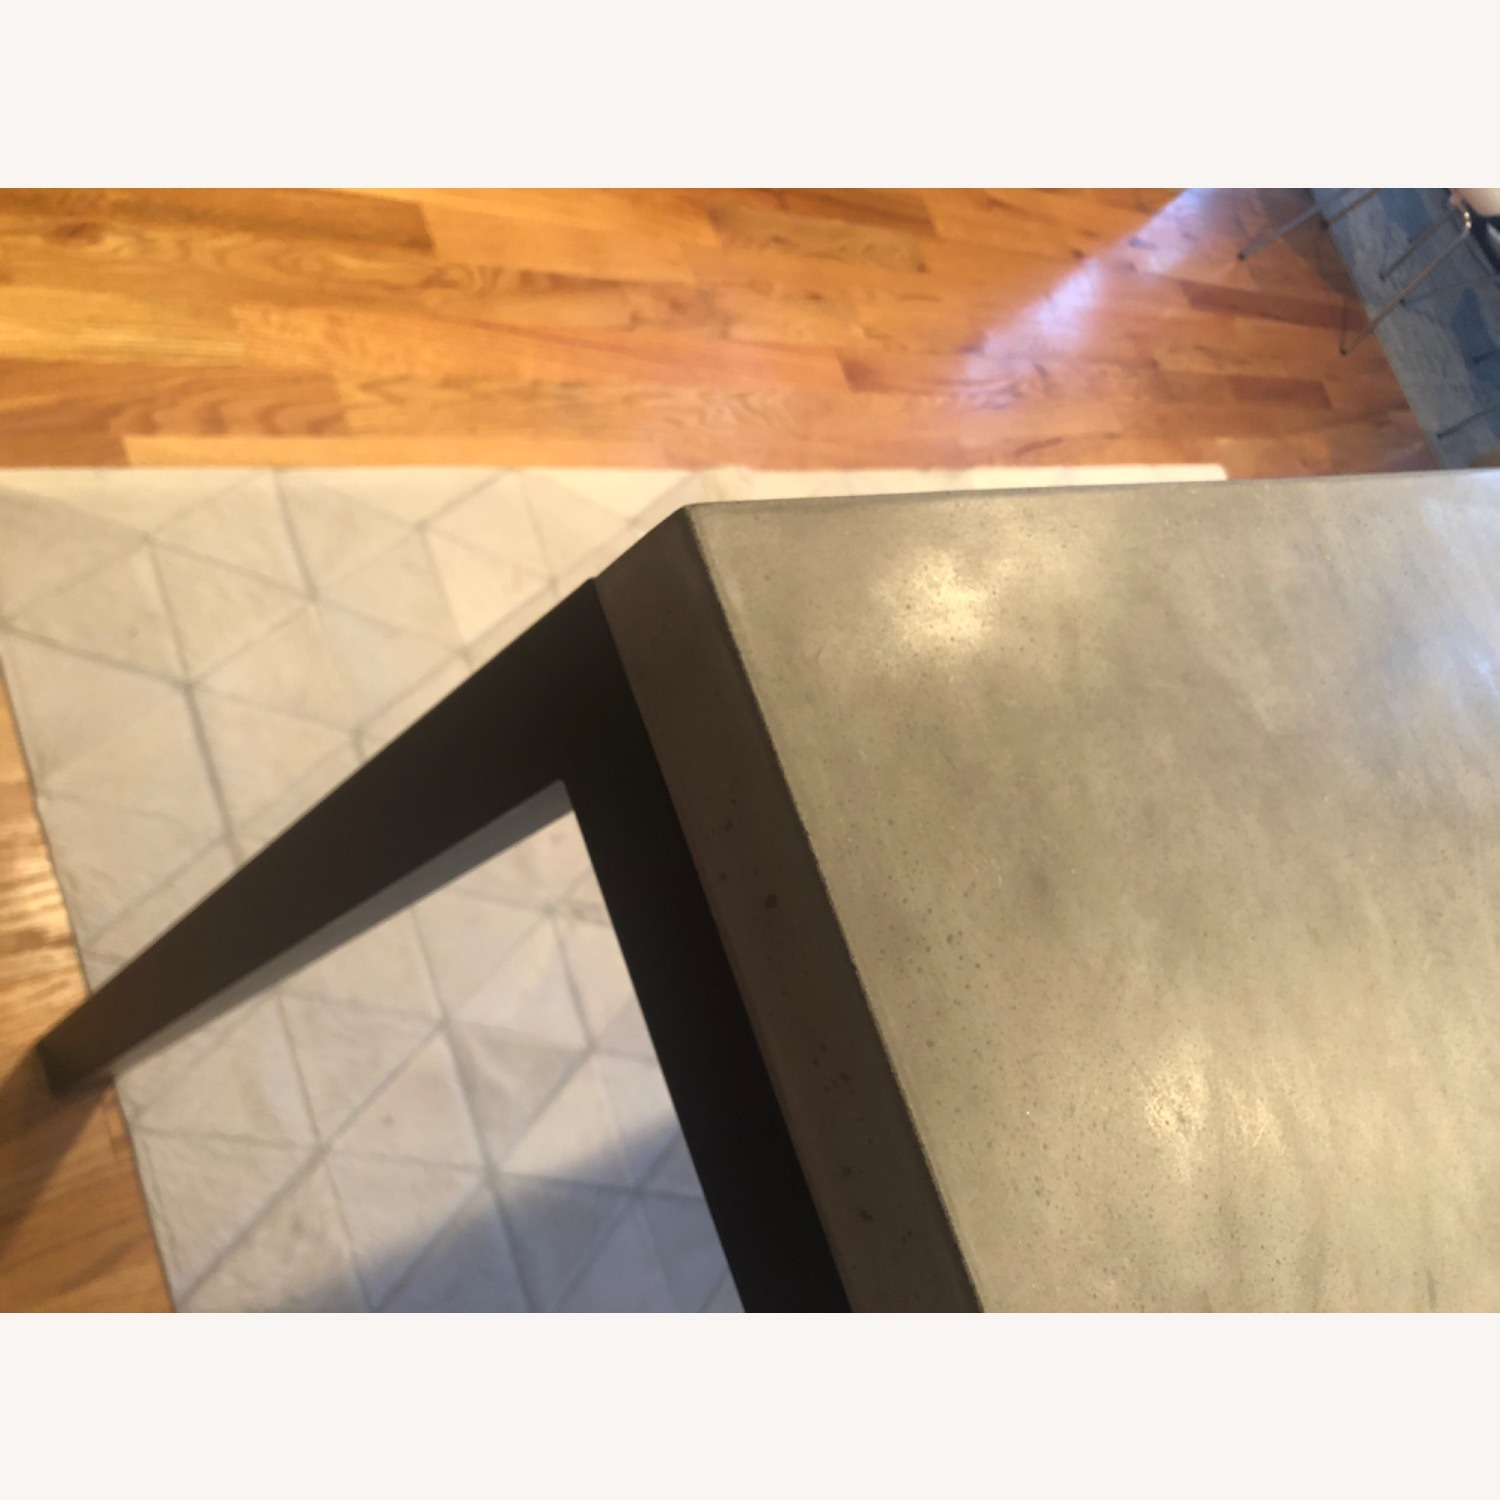 Crate & Barrel 2 Concrete Dining Tables - image-8